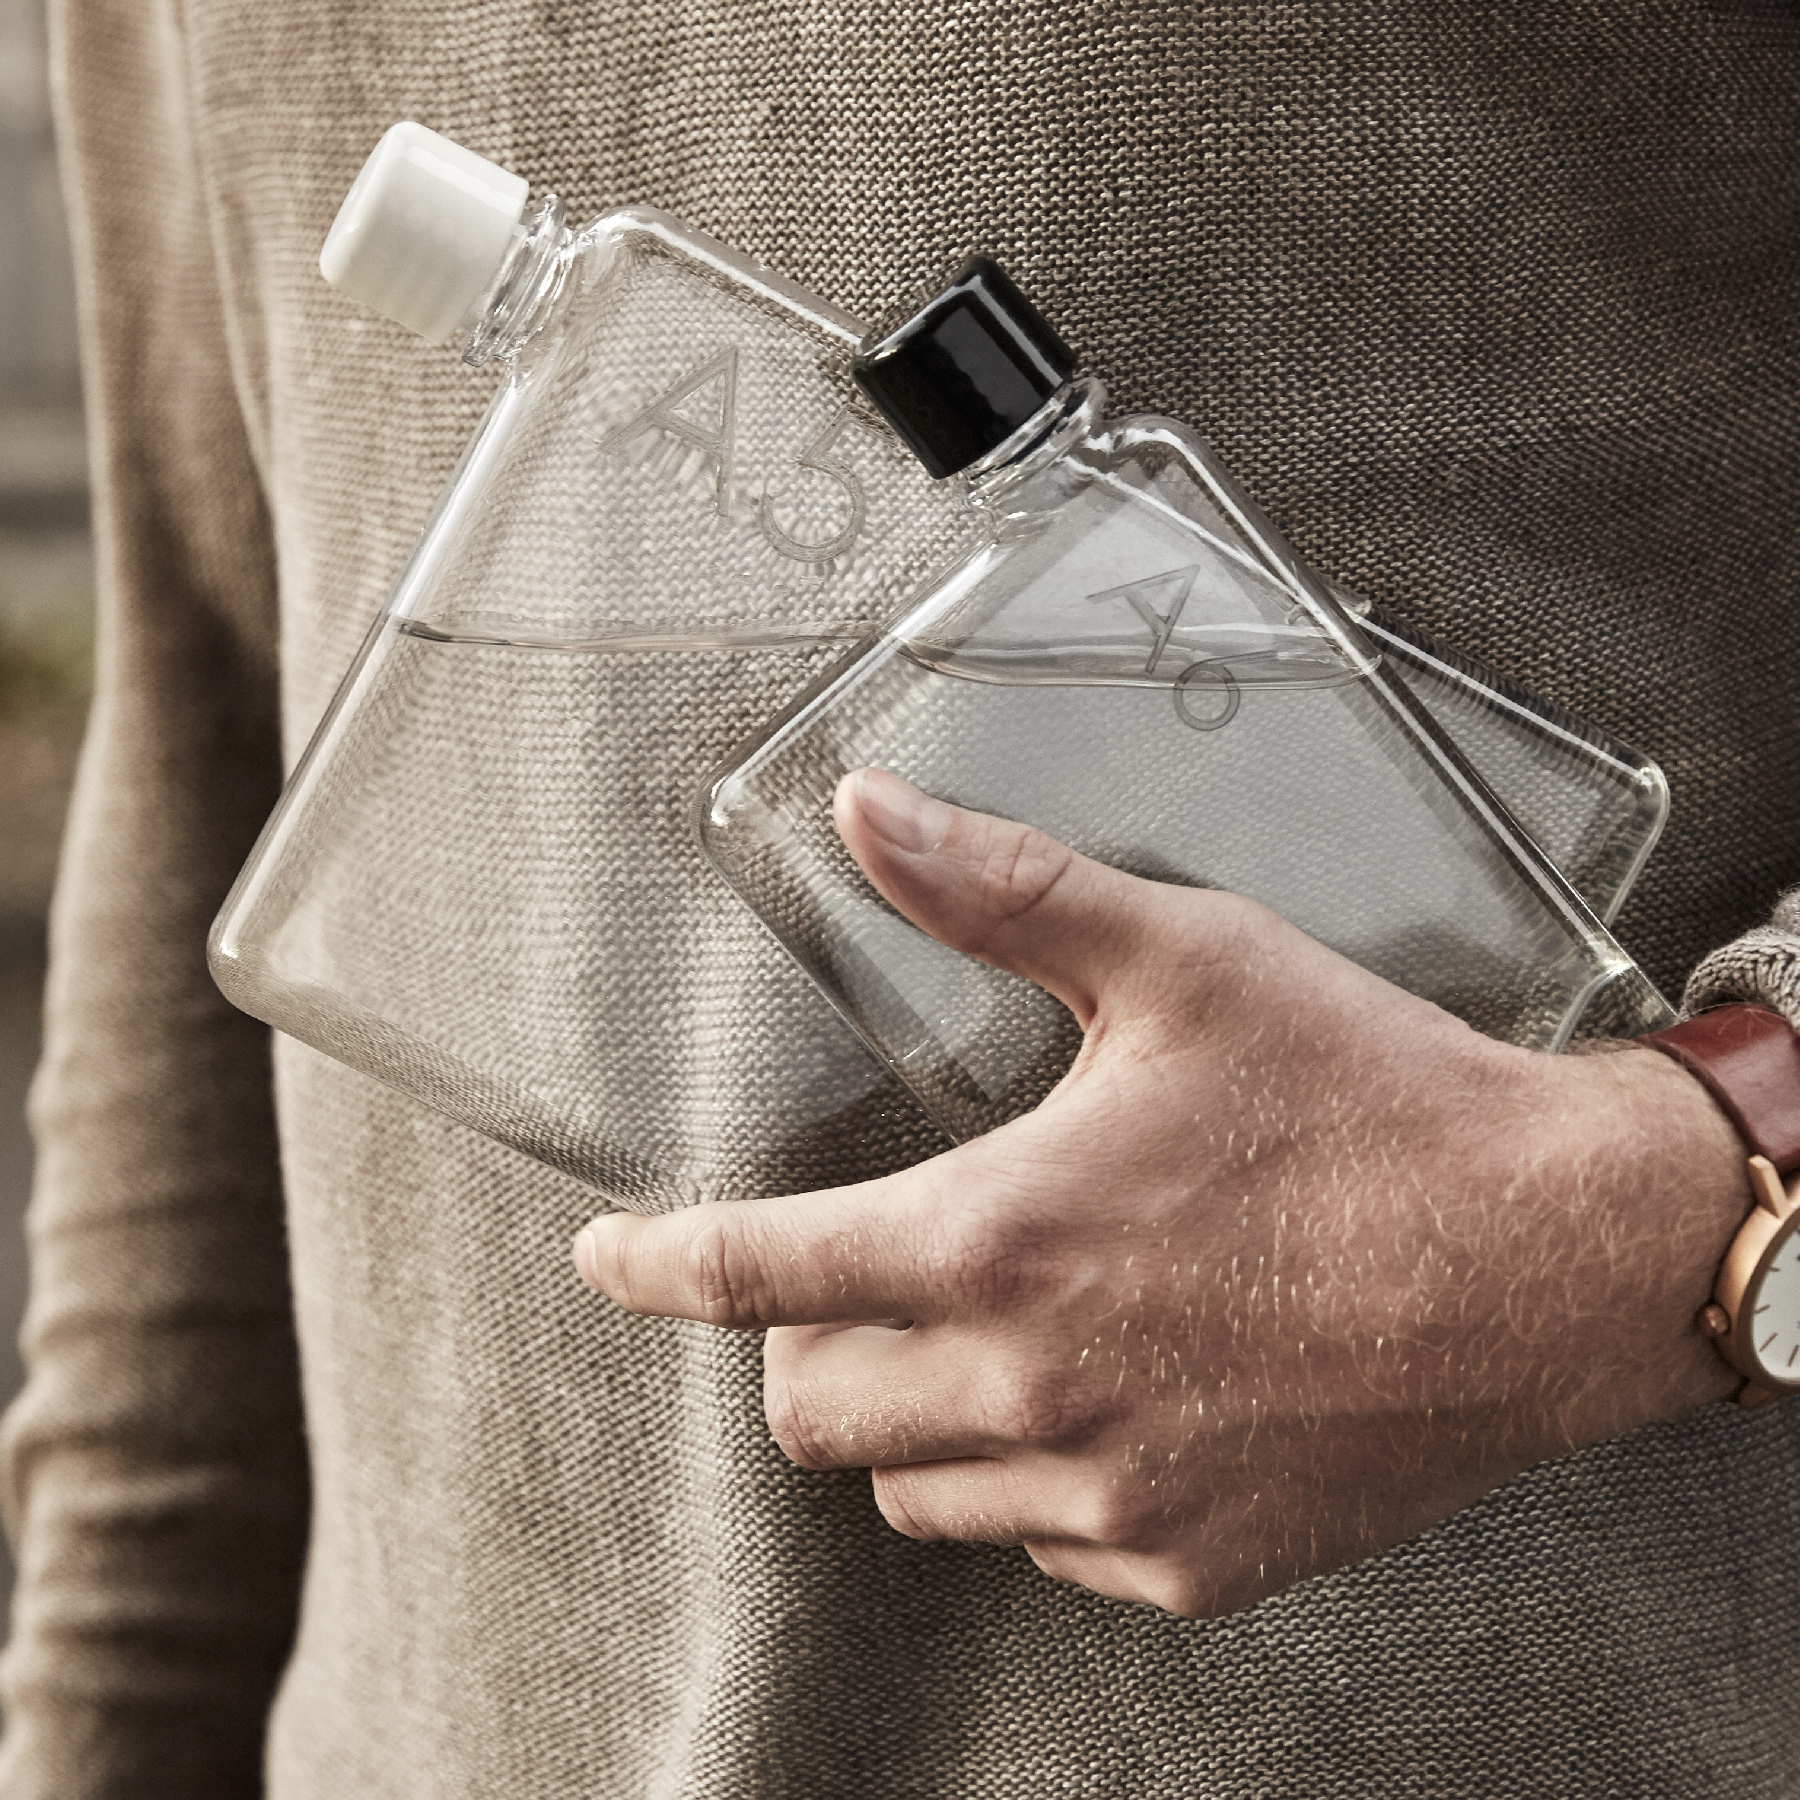 memobottle™ Slim Reusable Waterbottles. by Jesse Leeworthy